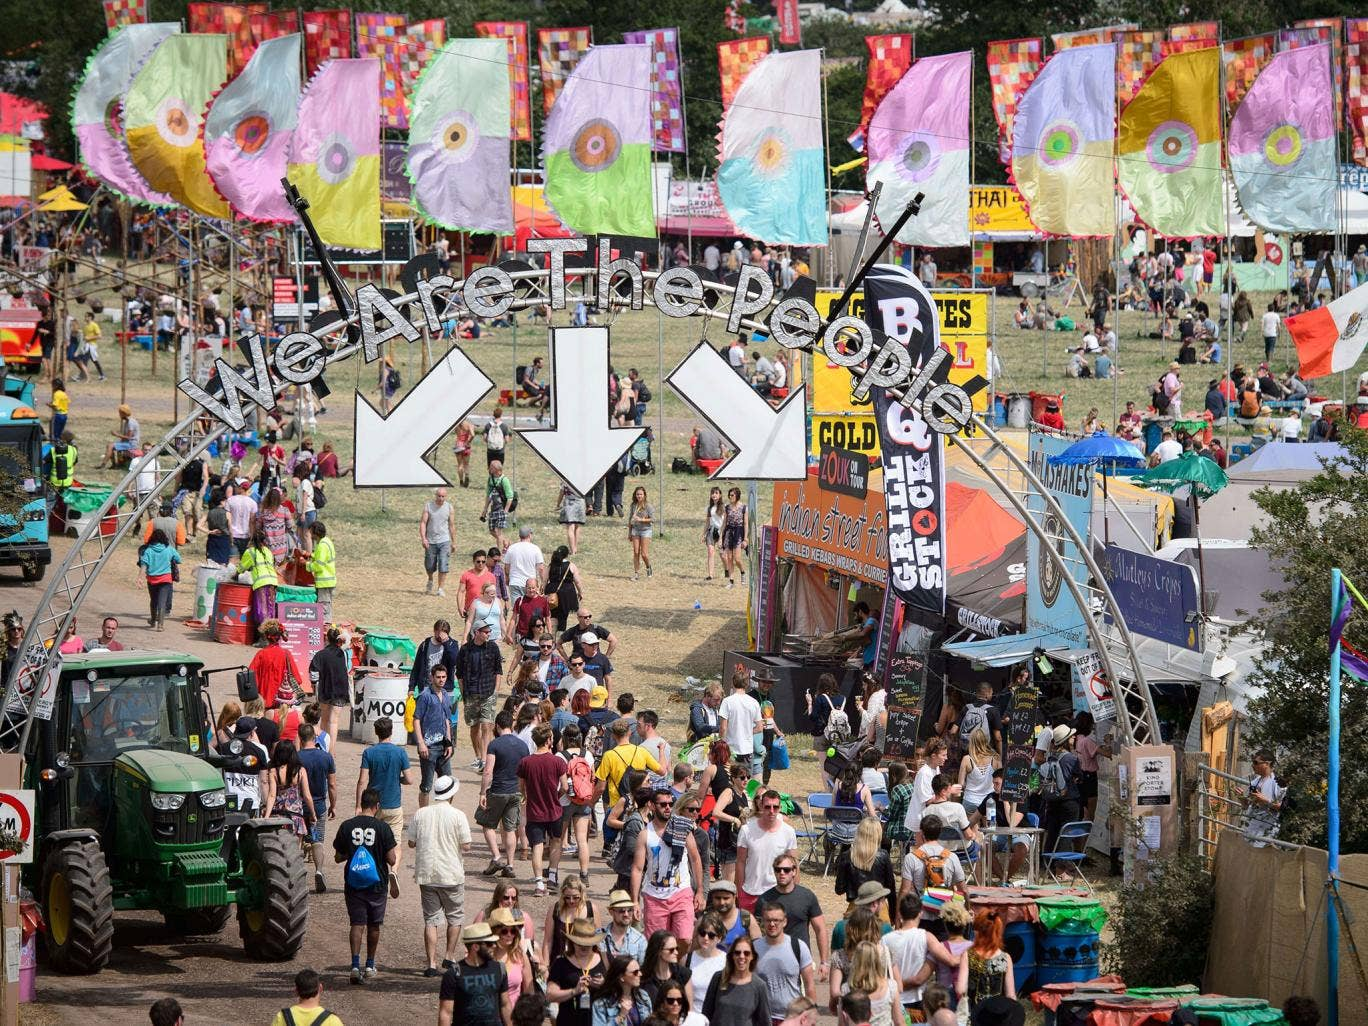 Festival goers enjoy the sun ahead of predicted rain as revellers gather ahead of this weekends Glastonbury Festival of Music and Performing Arts on Worthy Farm near Pilton in Somerset